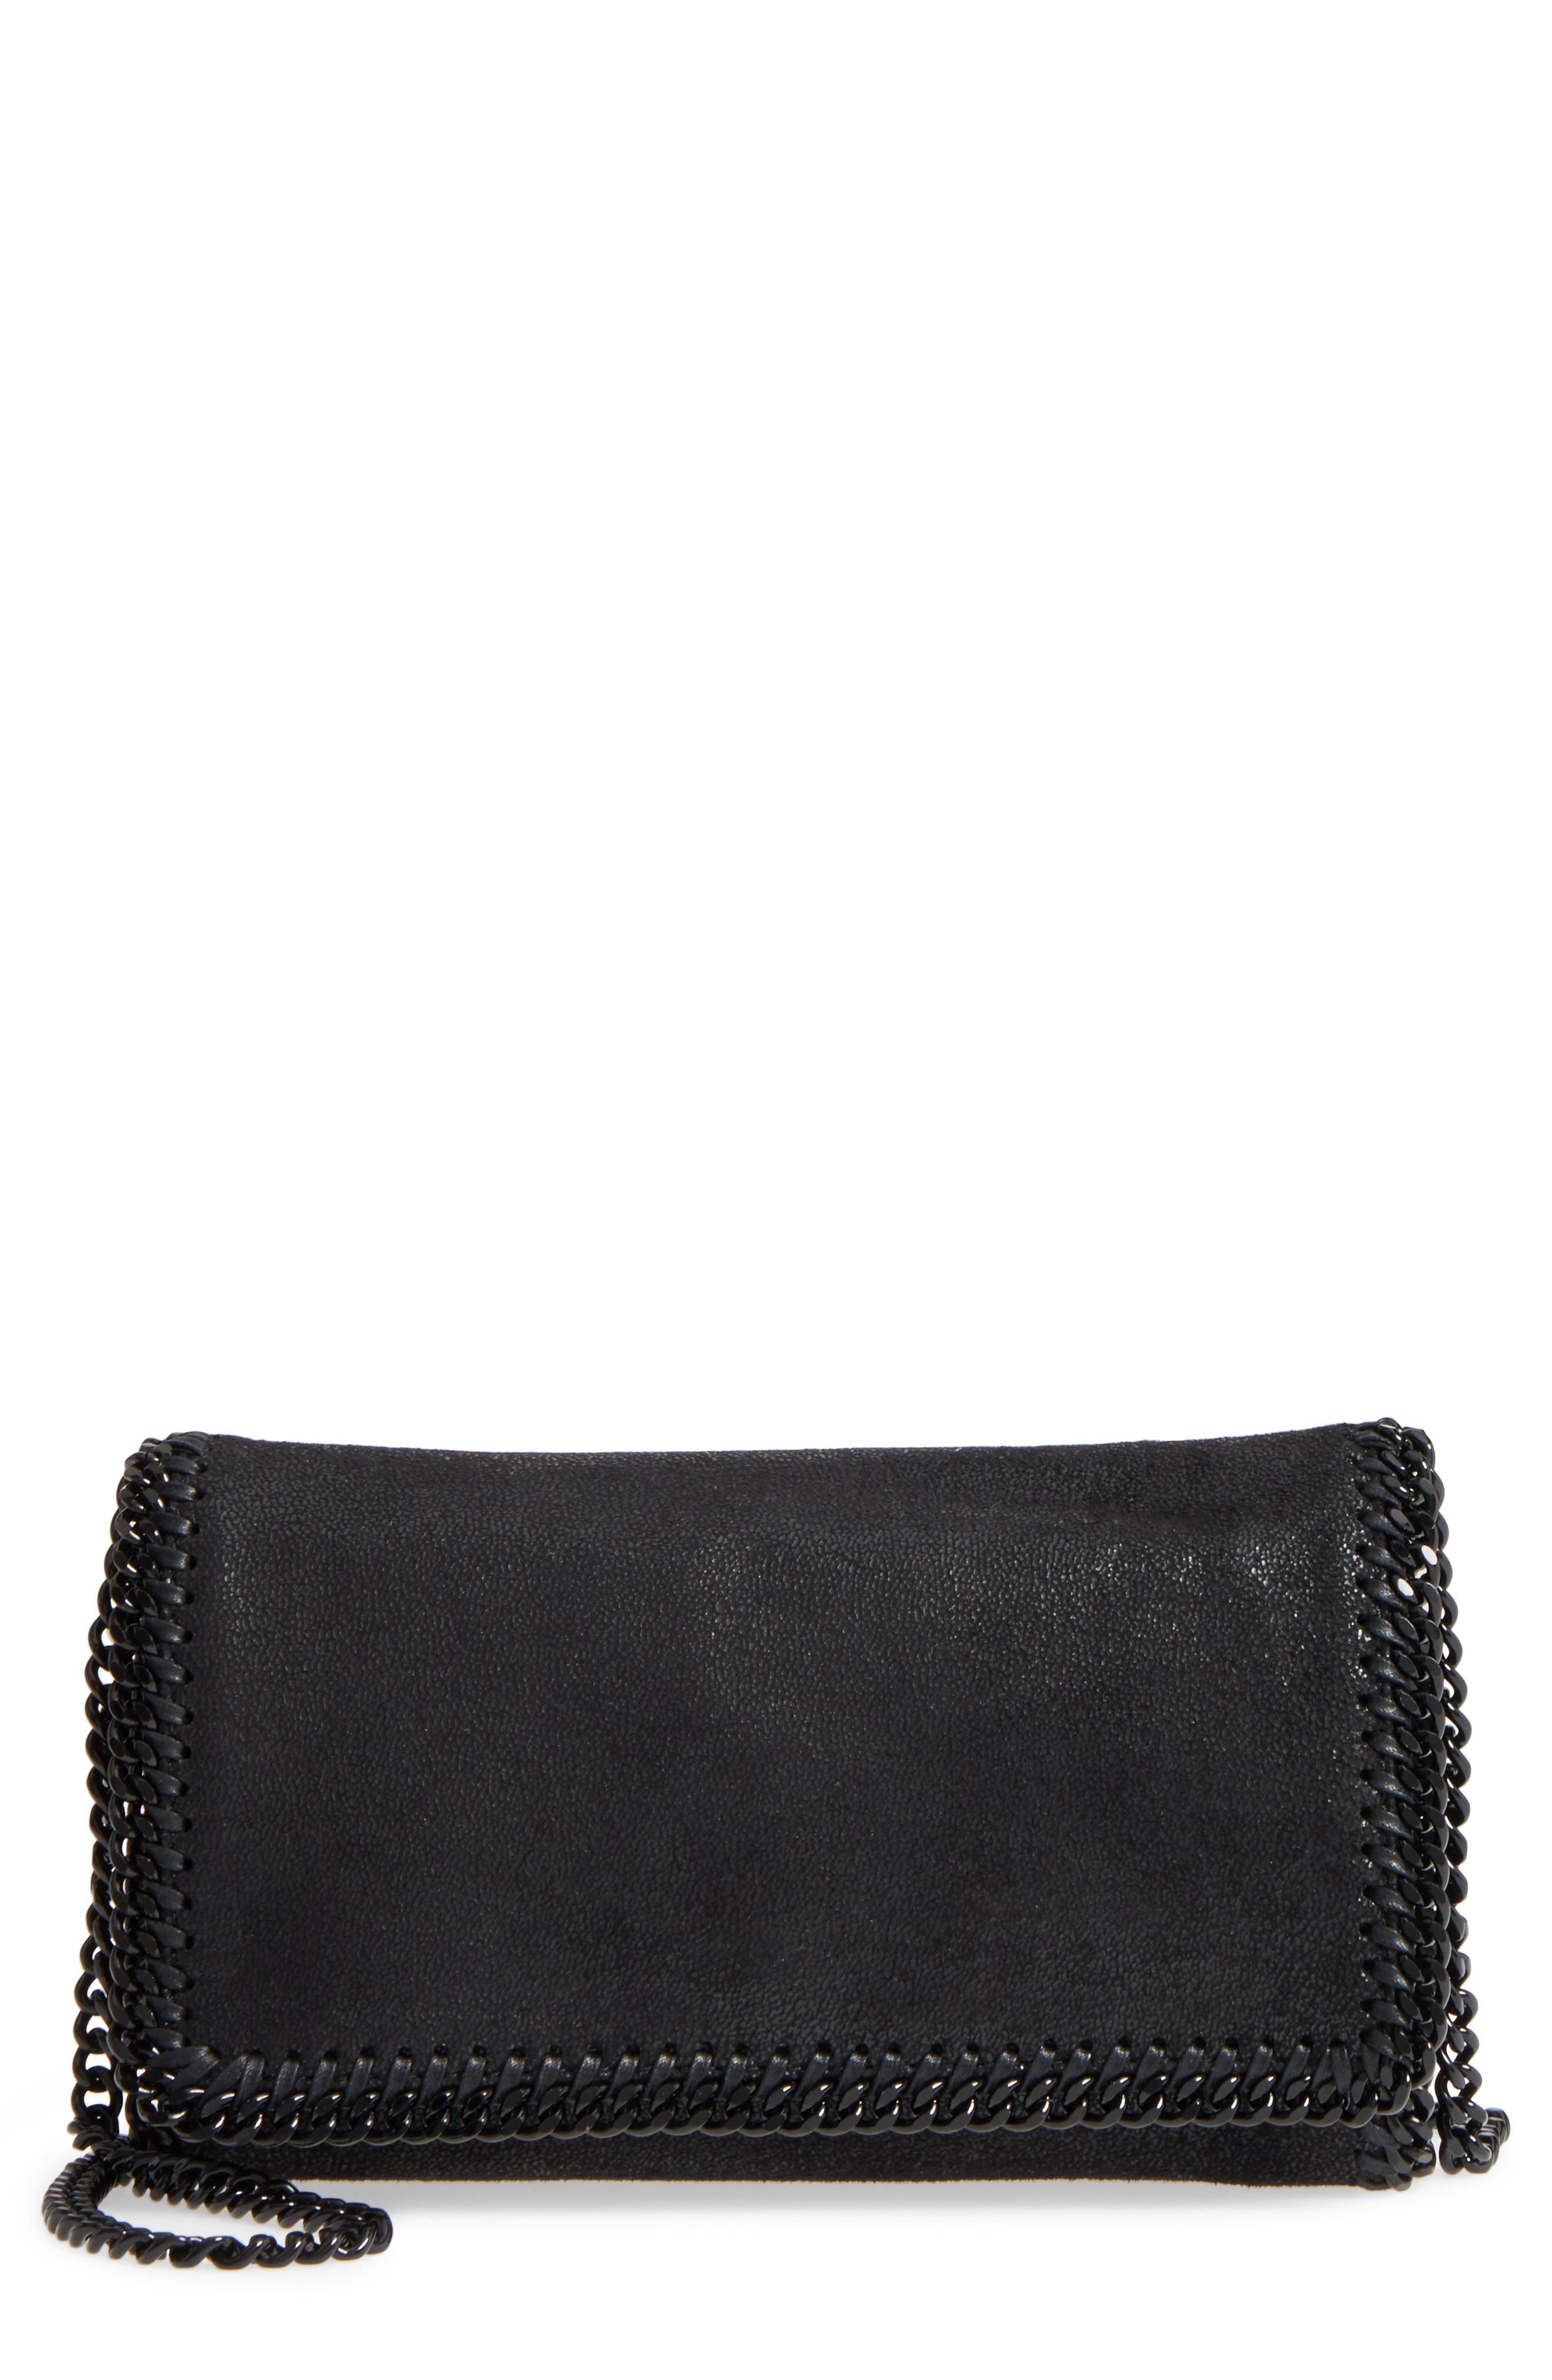 STELLA MCCARTNEY, Falabella Shaggy Deer Faux Leather Clutch, Main thumbnail 1, color, BLACK OUT